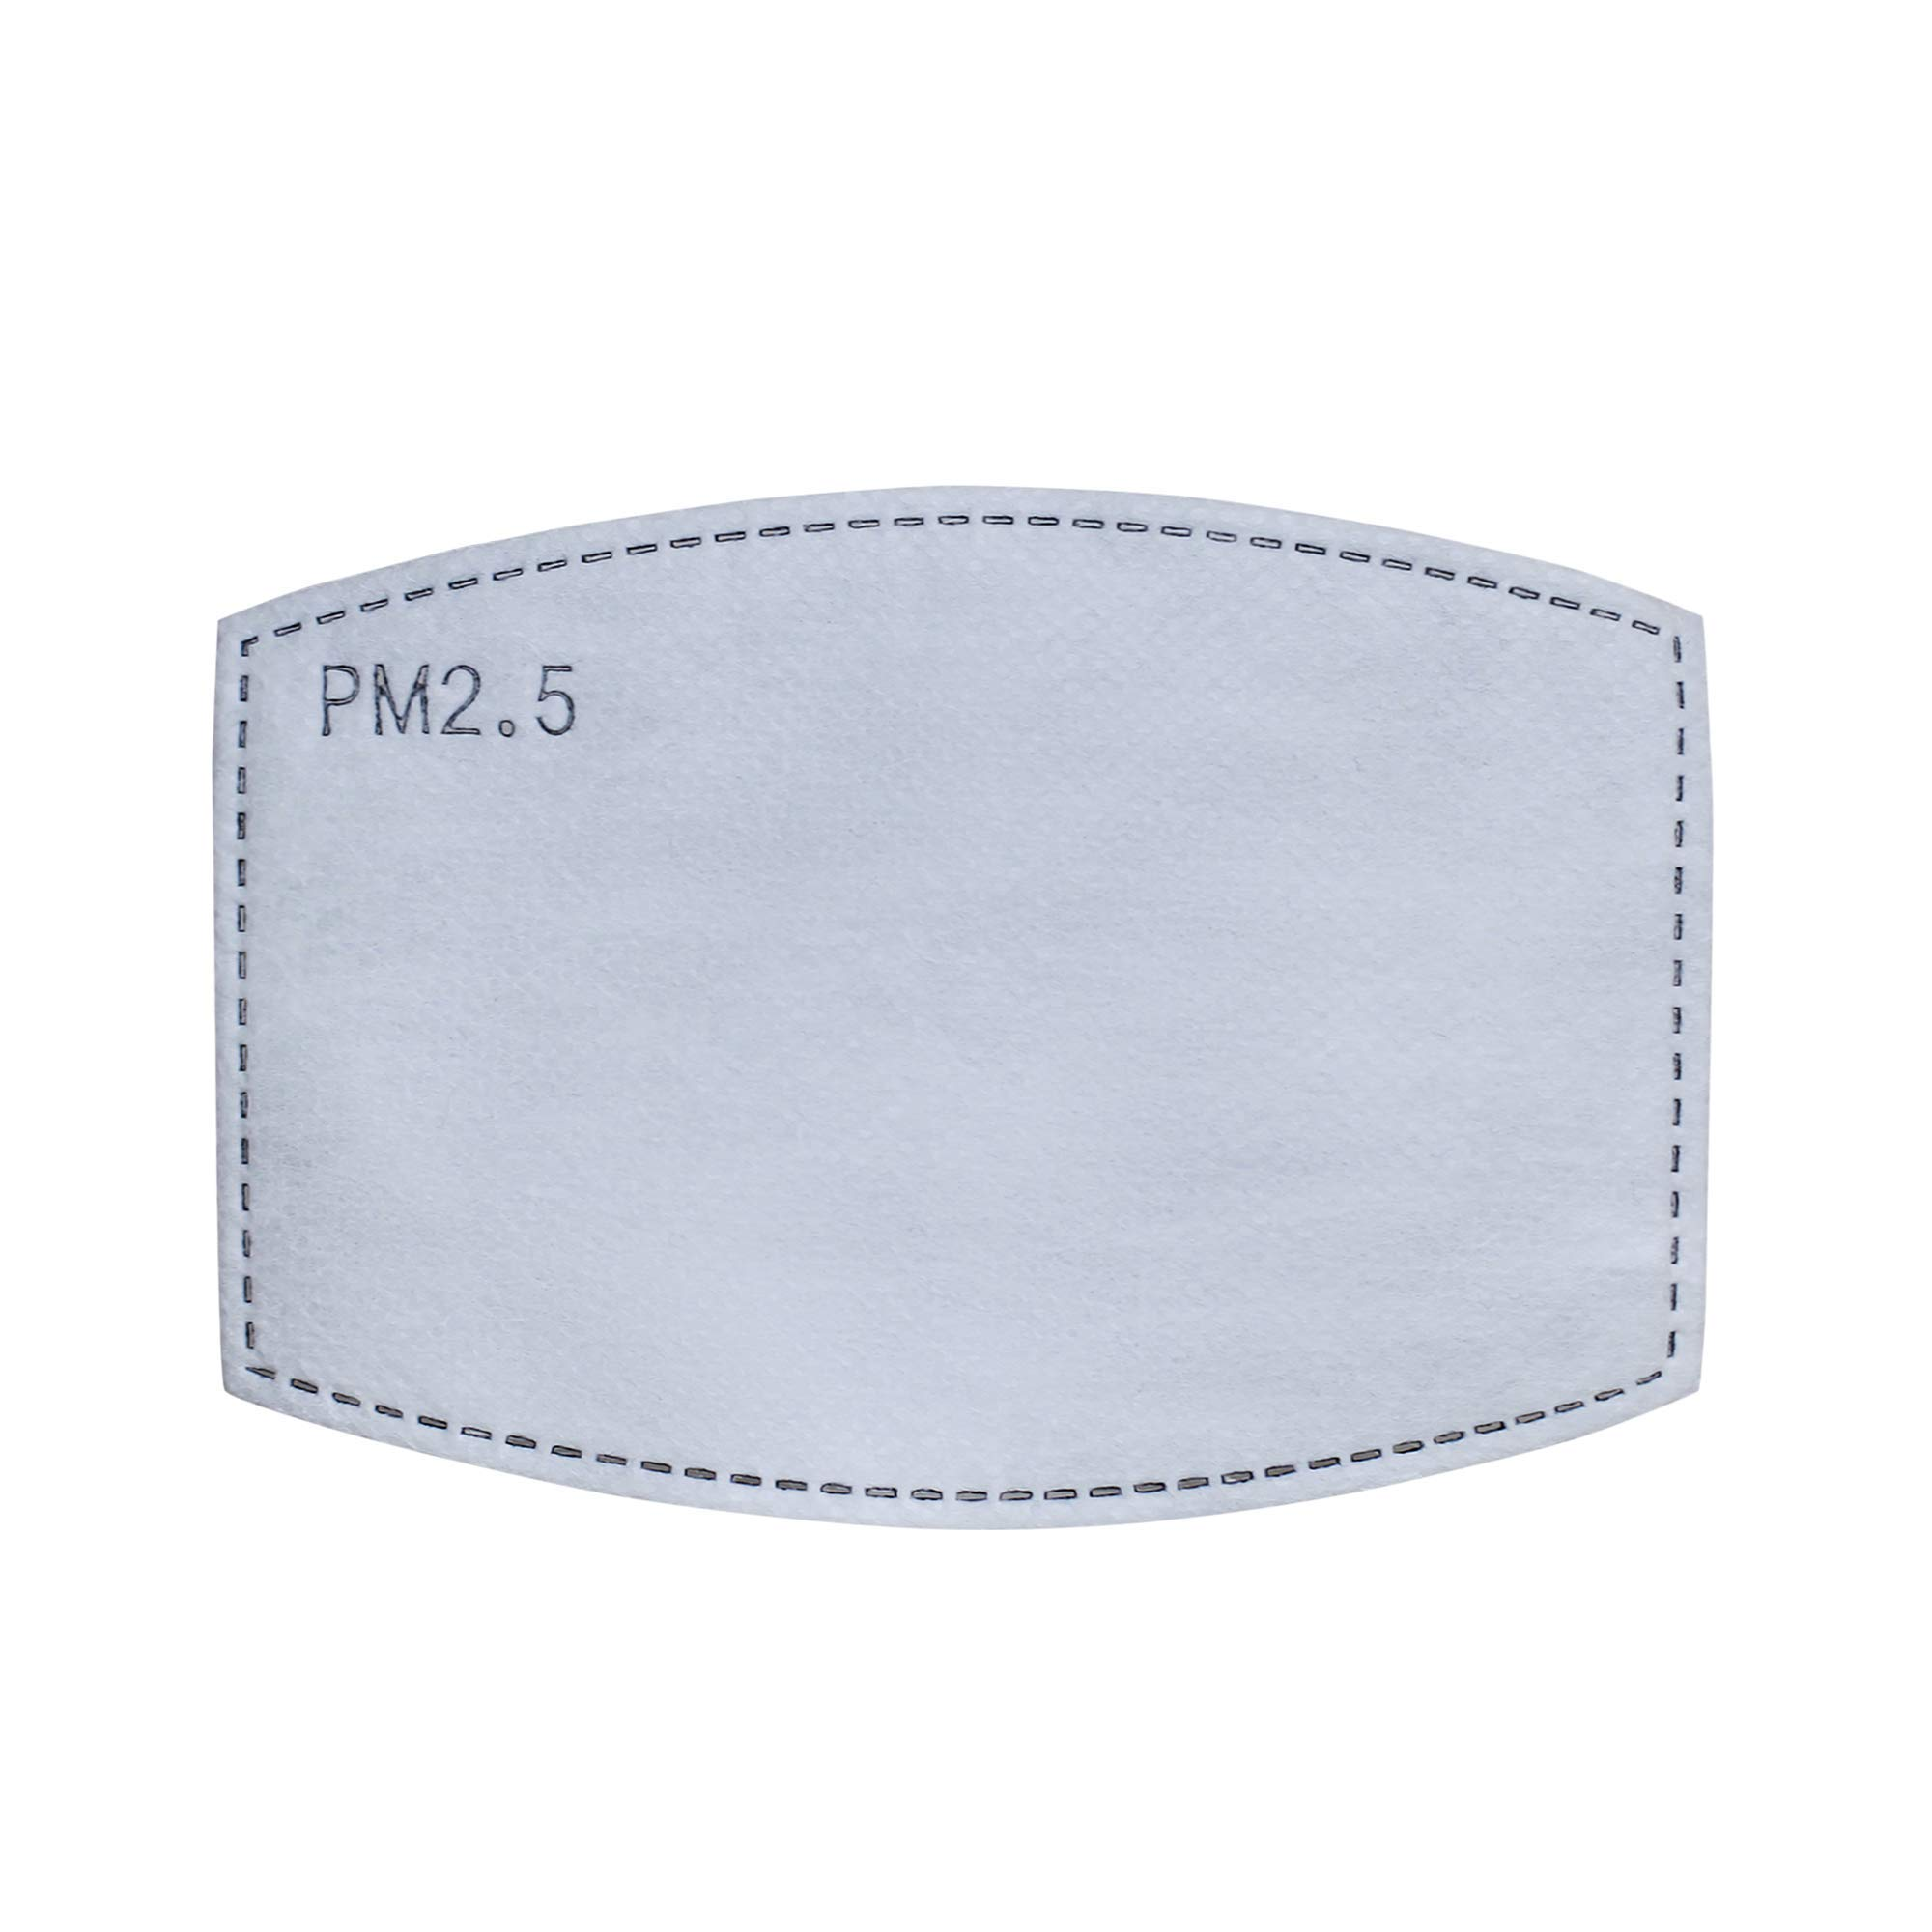 30 PM2.5 Face Mask Filters with Activated Carbon - 5 Pressed Layers Per Replacement - For Masks with Pockets - Replaceable - Disposable - PM 2.5 Filter with Activated Charcoal - Adult Size - Not Paper